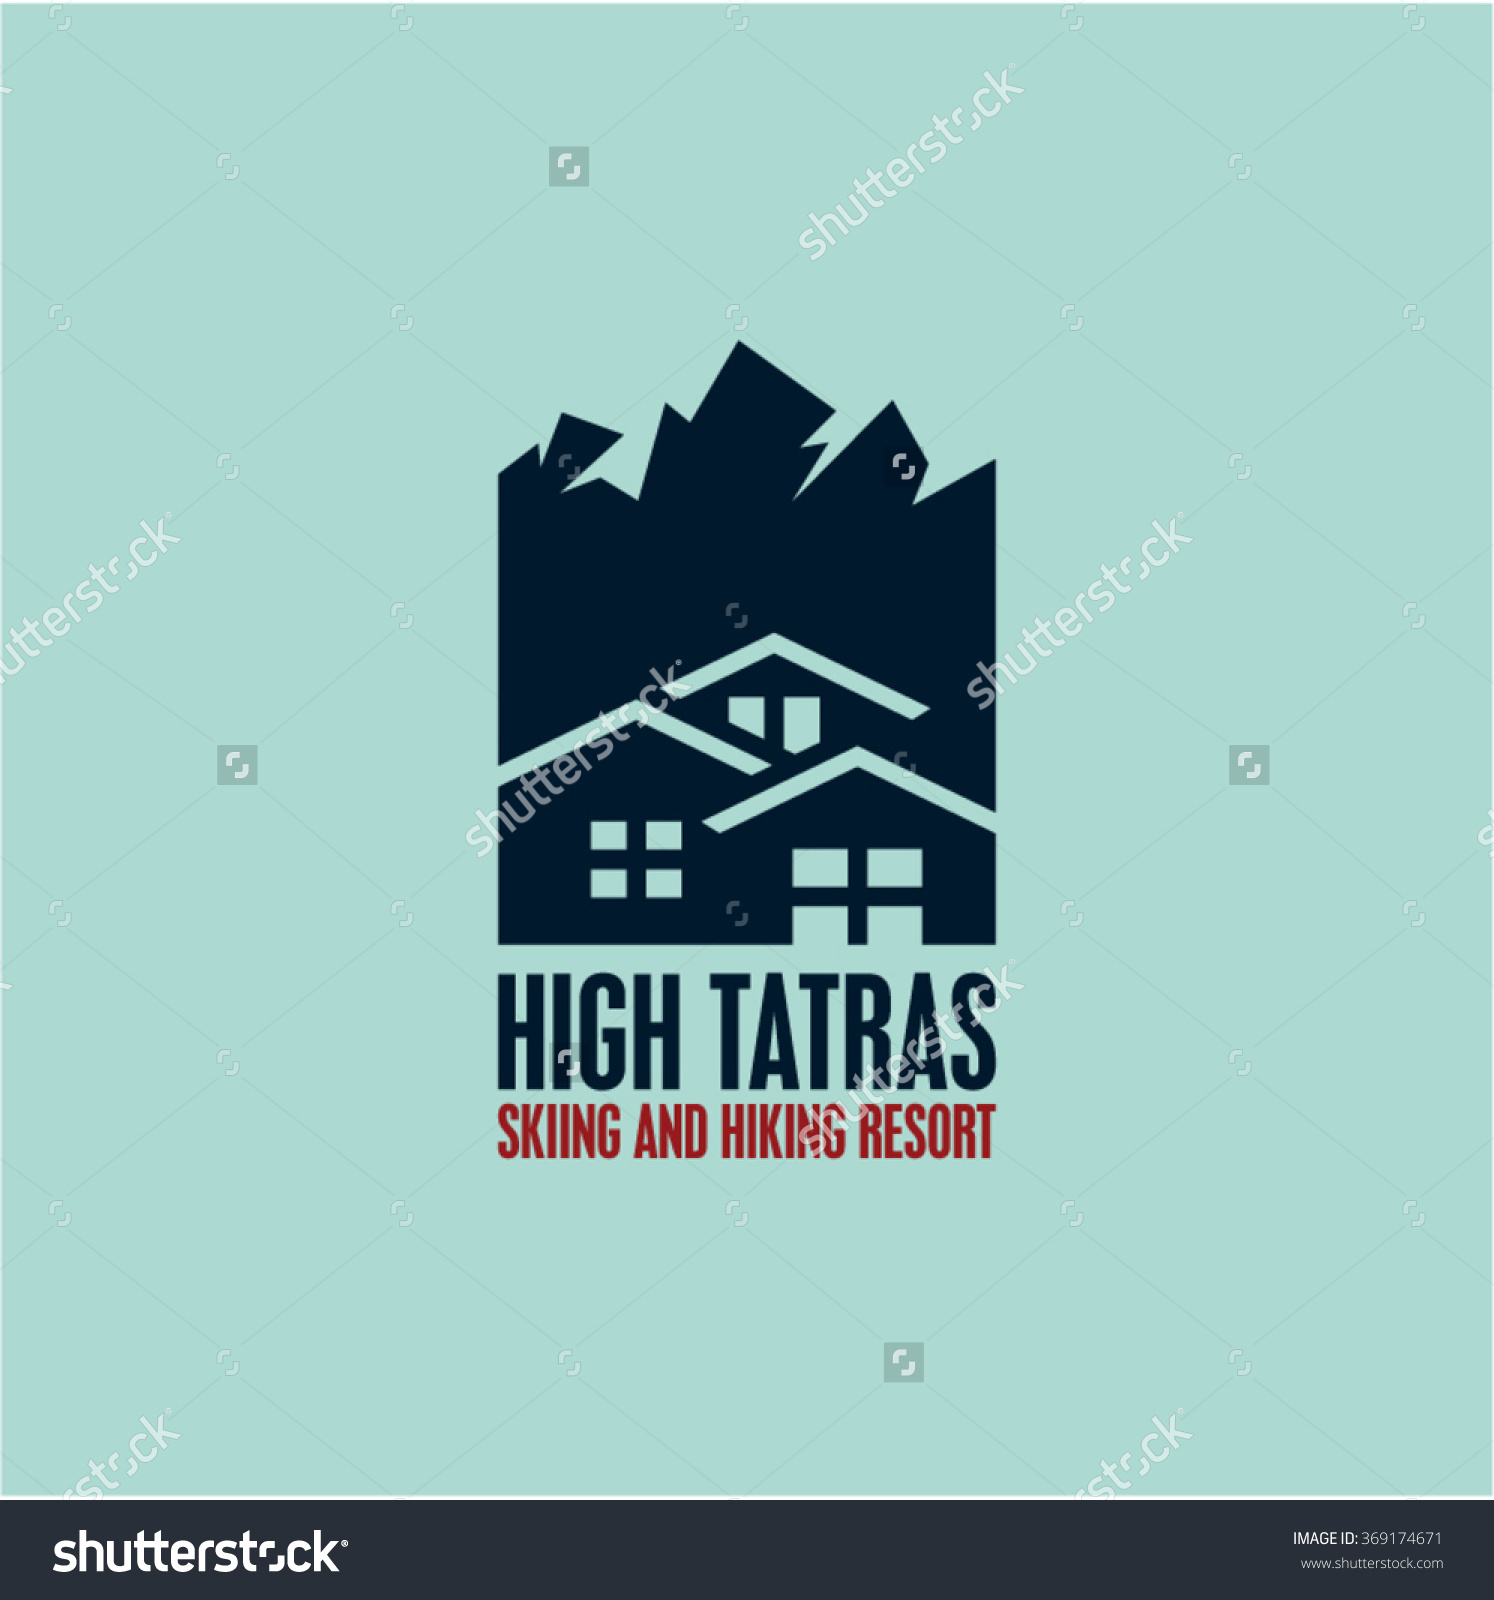 High Tatras Stock Vectors & Vector Clip Art.